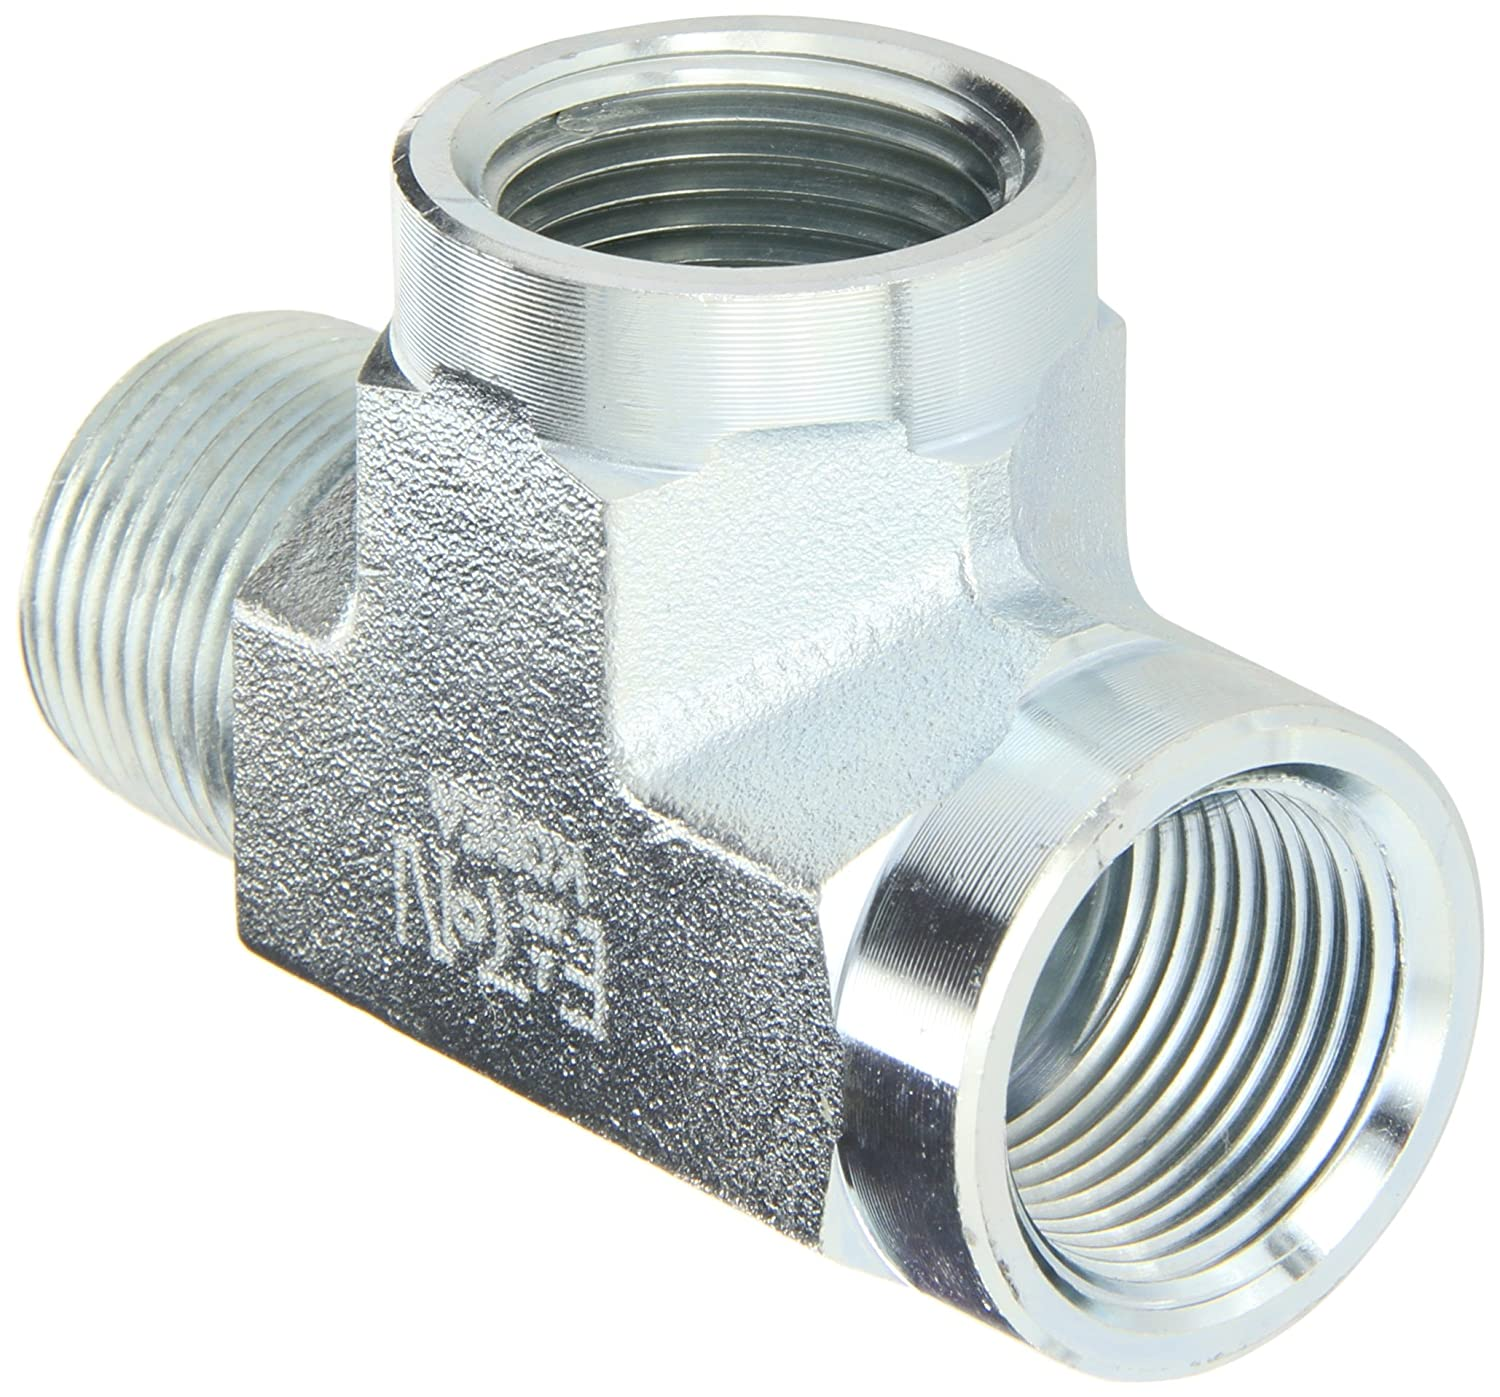 Run Tee 3//4 NPT Male x NPT Female x NPT Female Eaton Aeroquip 2092-12-12S Steel Pipe Fitting